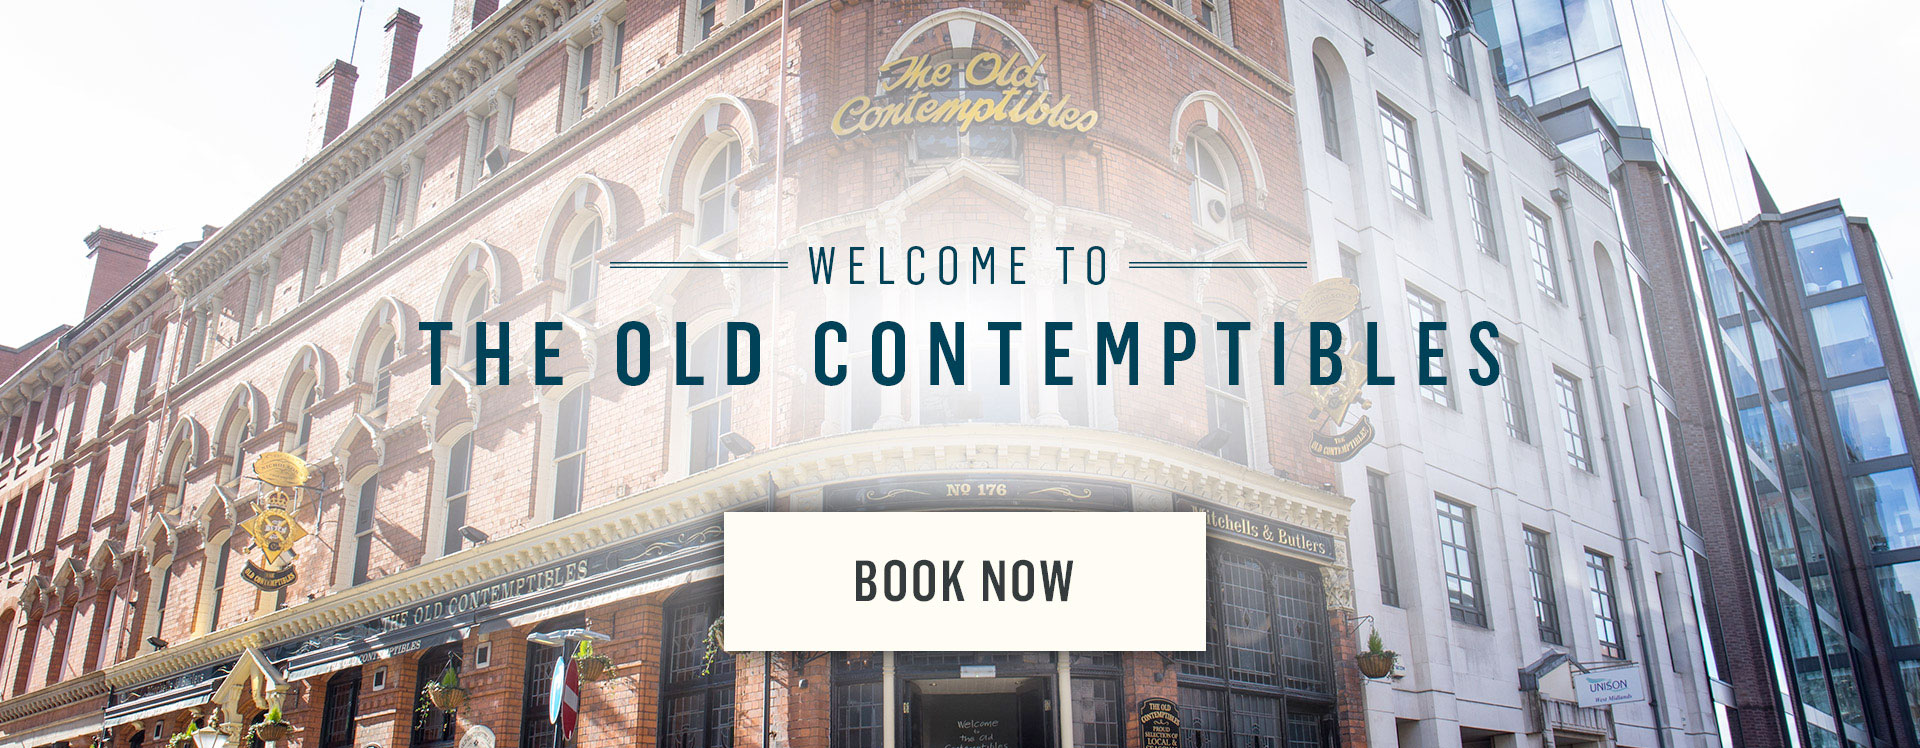 Welcome to The Old Contemptibles - Book Now